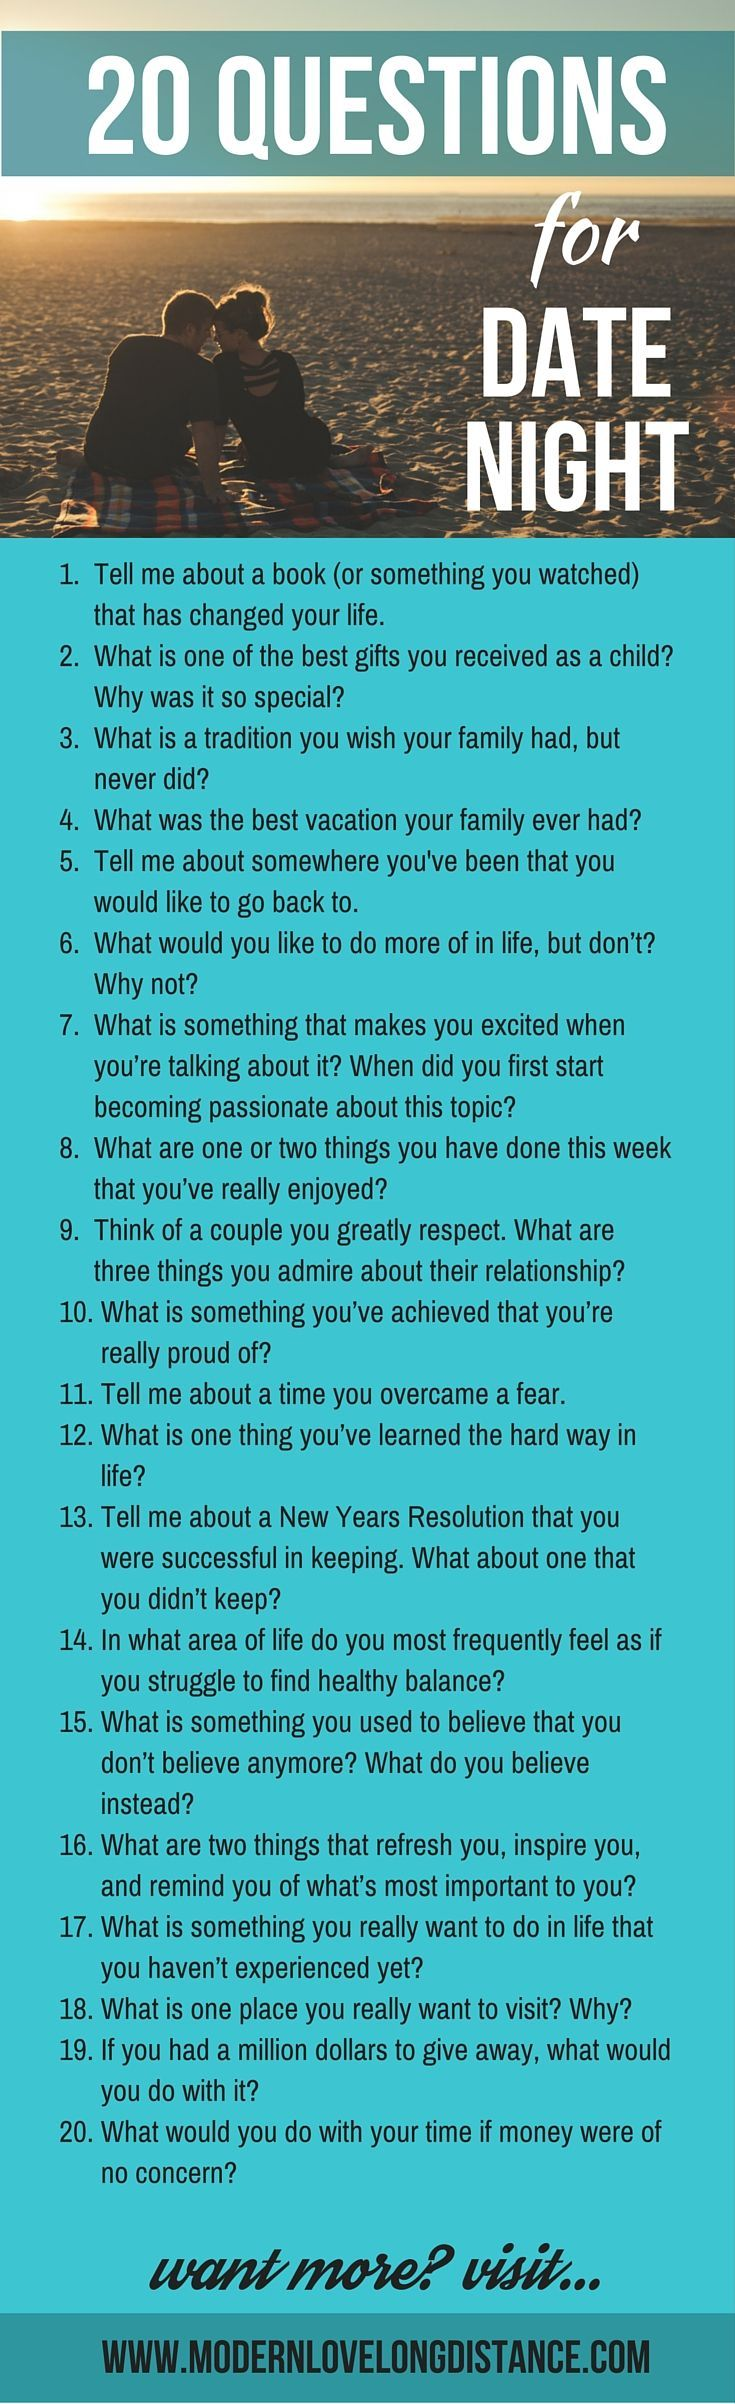 20 questions about dating and relationships